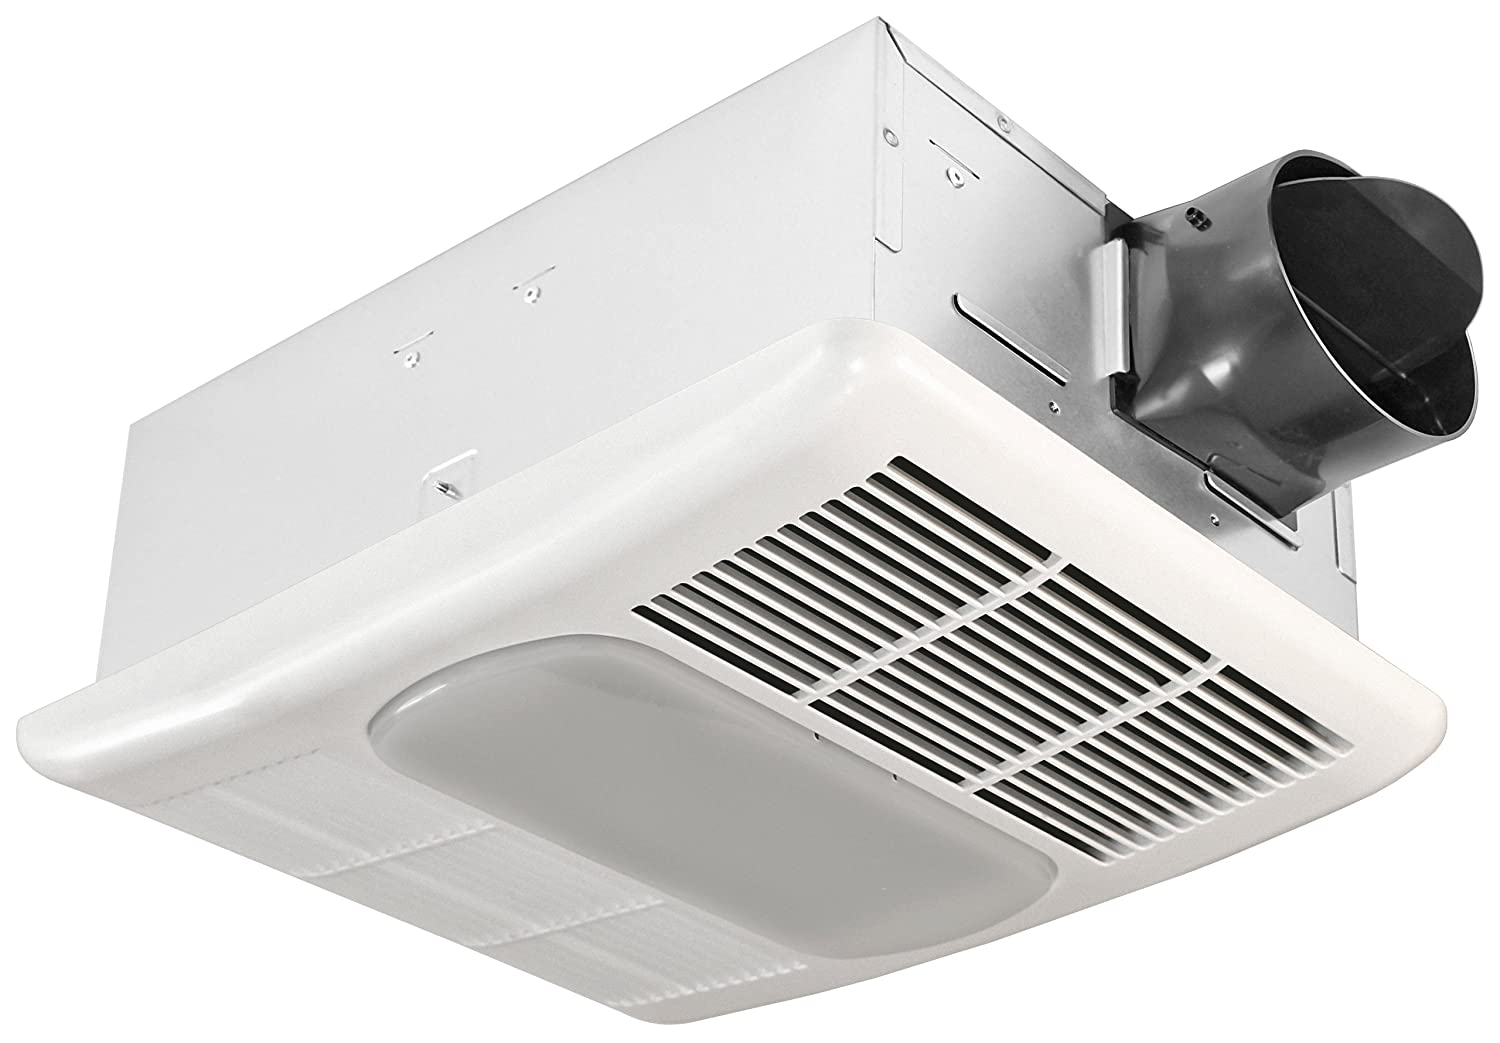 Delta BreezRadiance RADL CFM Exhaust Bath FanCFL Light And - Bathroom exhaust fan with heat lamp for bathroom decor ideas